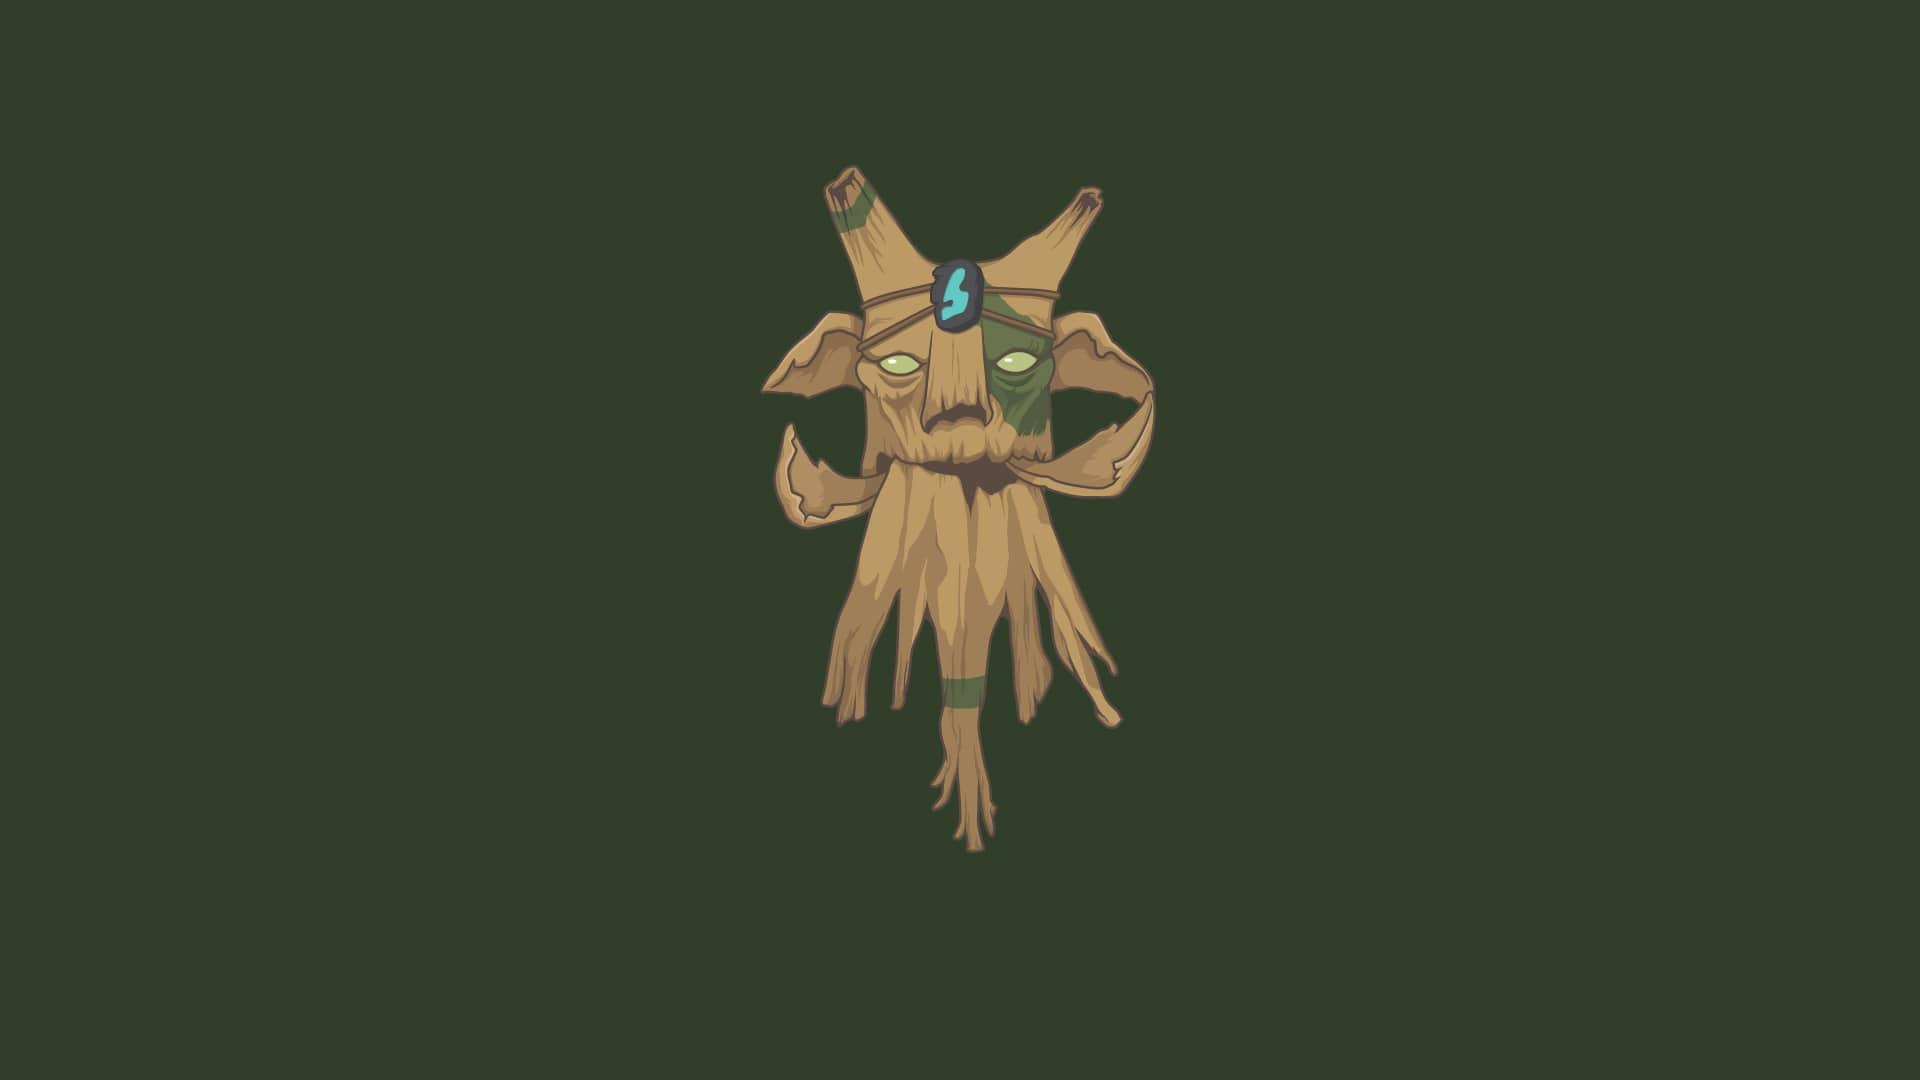 Dota2 : Treant Protector desktop wallpaper